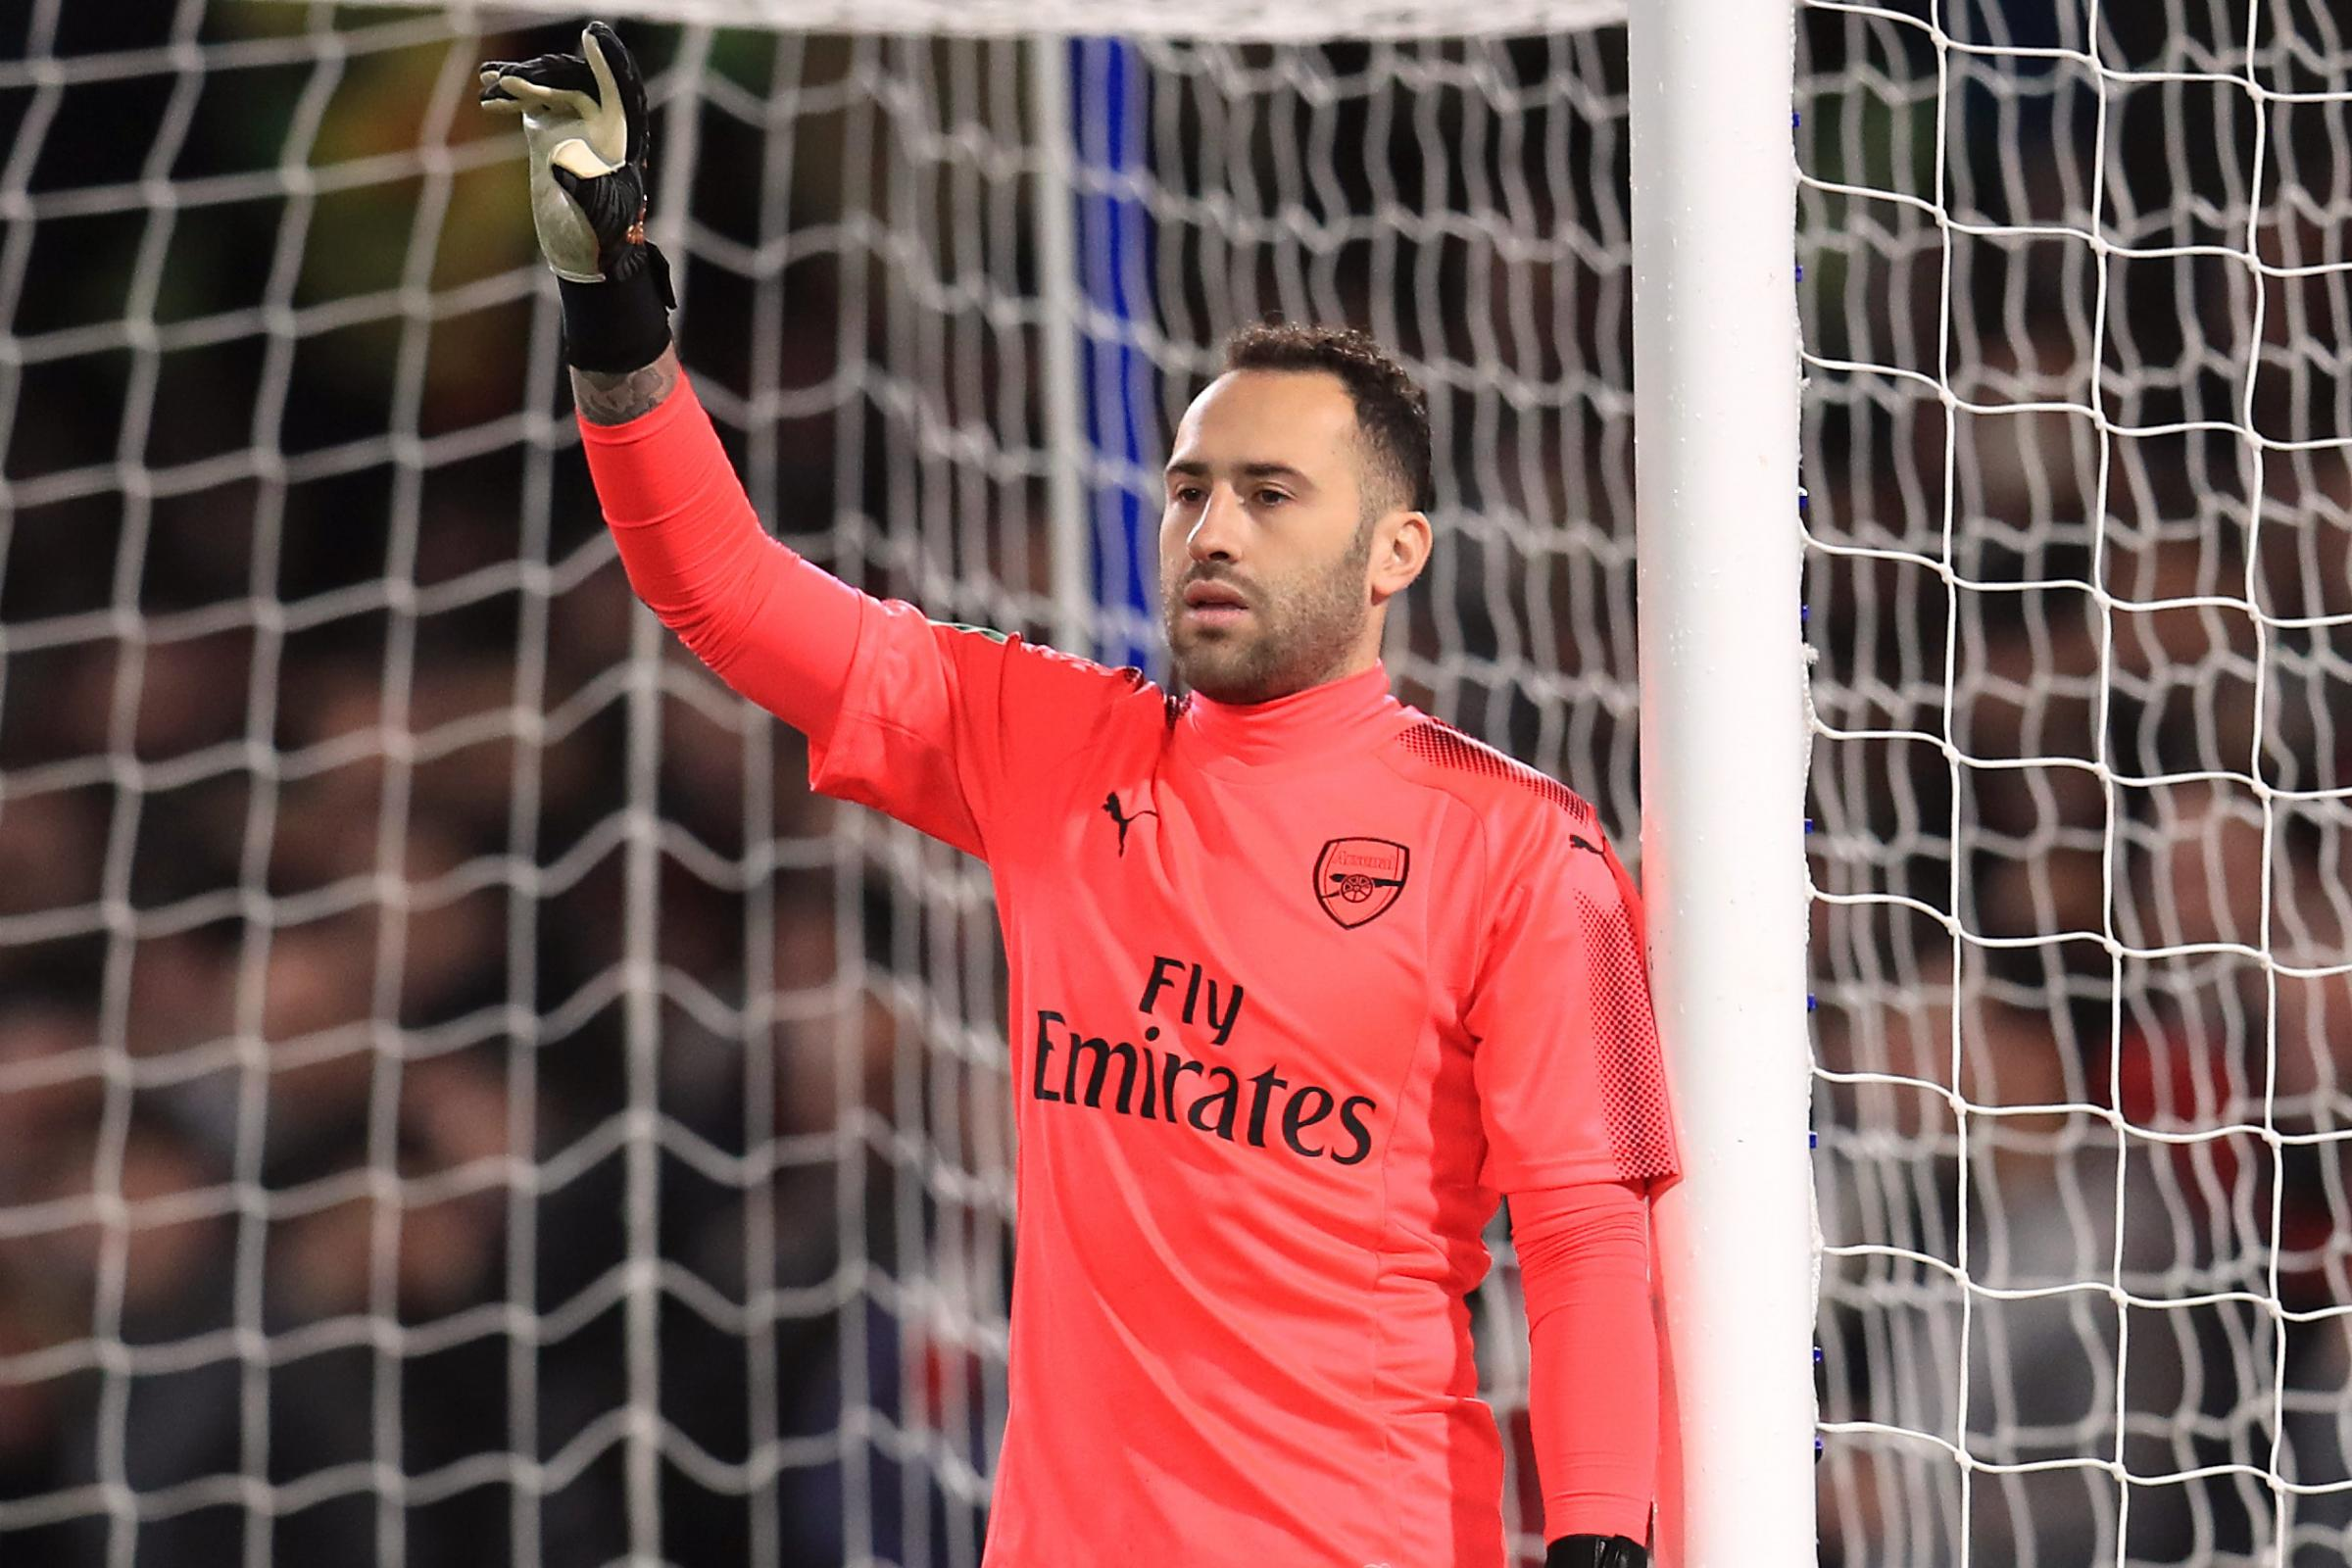 Napoli goalkeeper David Ospina suffered concussion against Udinese